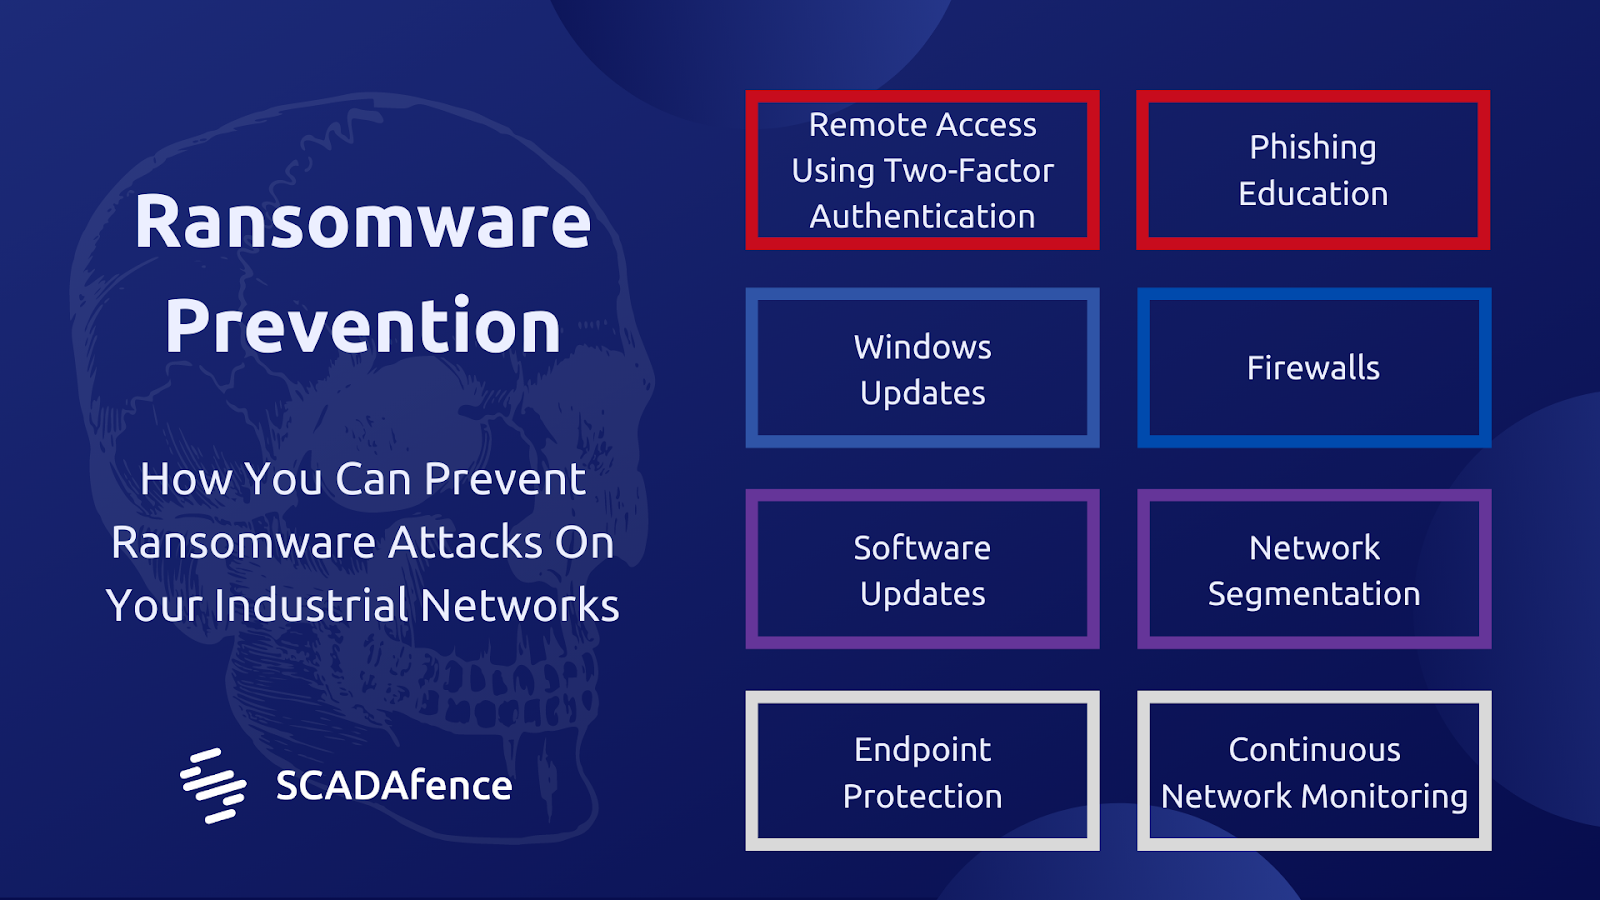 Preventing Ransomware Attacks On Industrial Networks